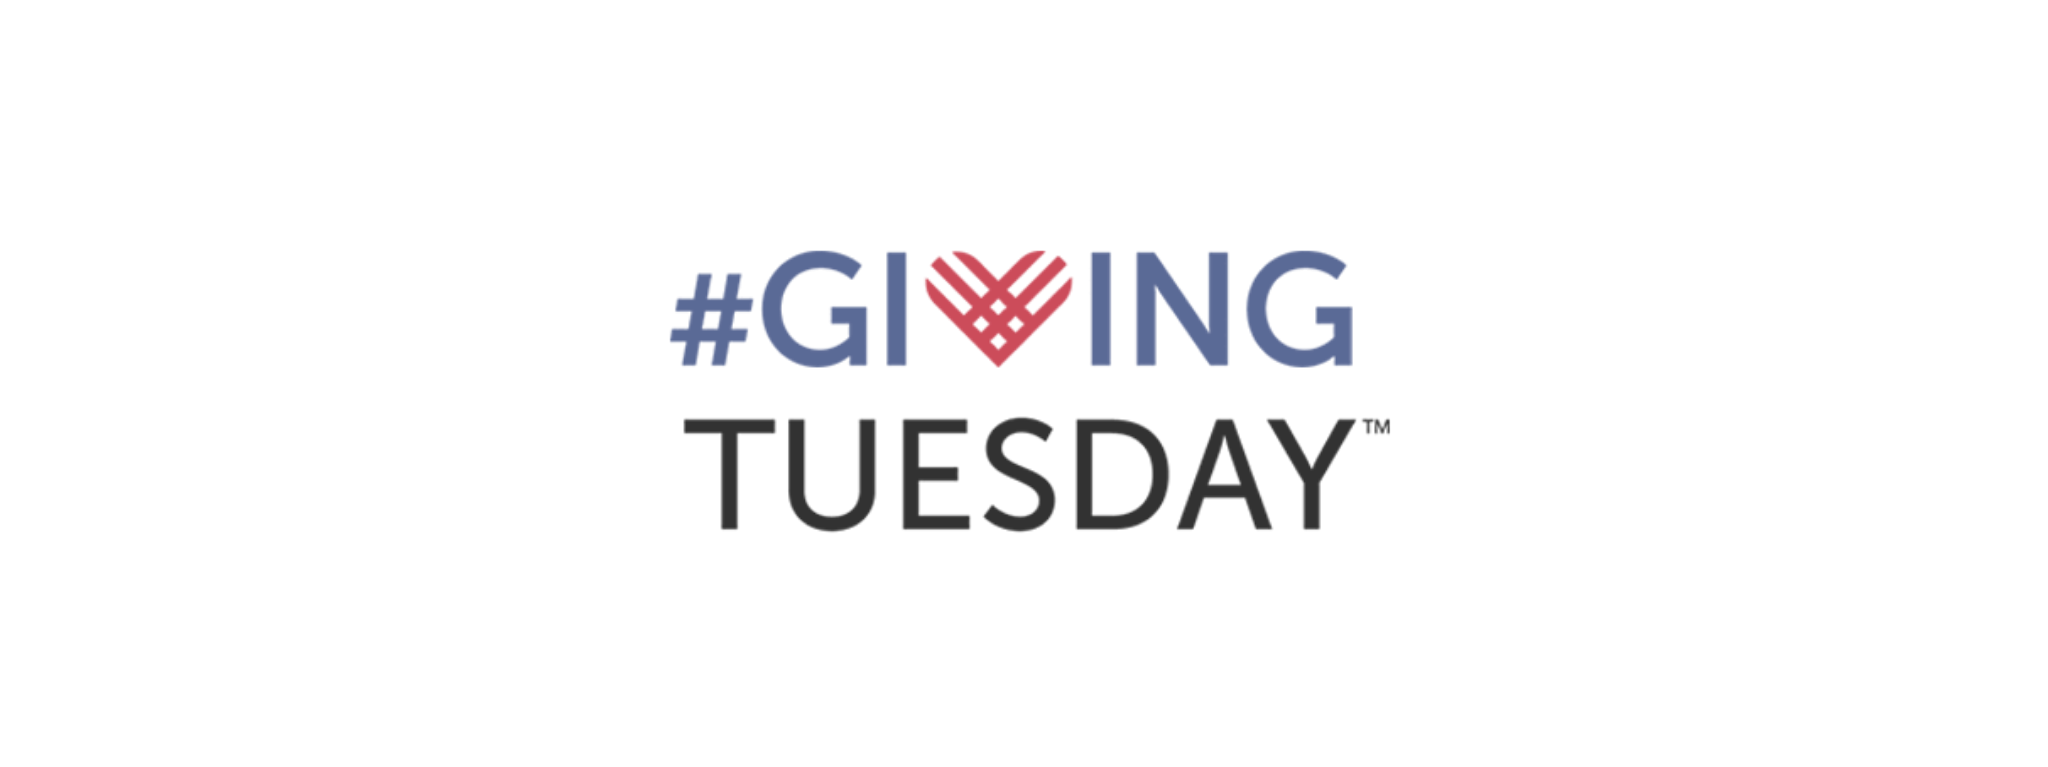 Special Offers for #GivingTuesday